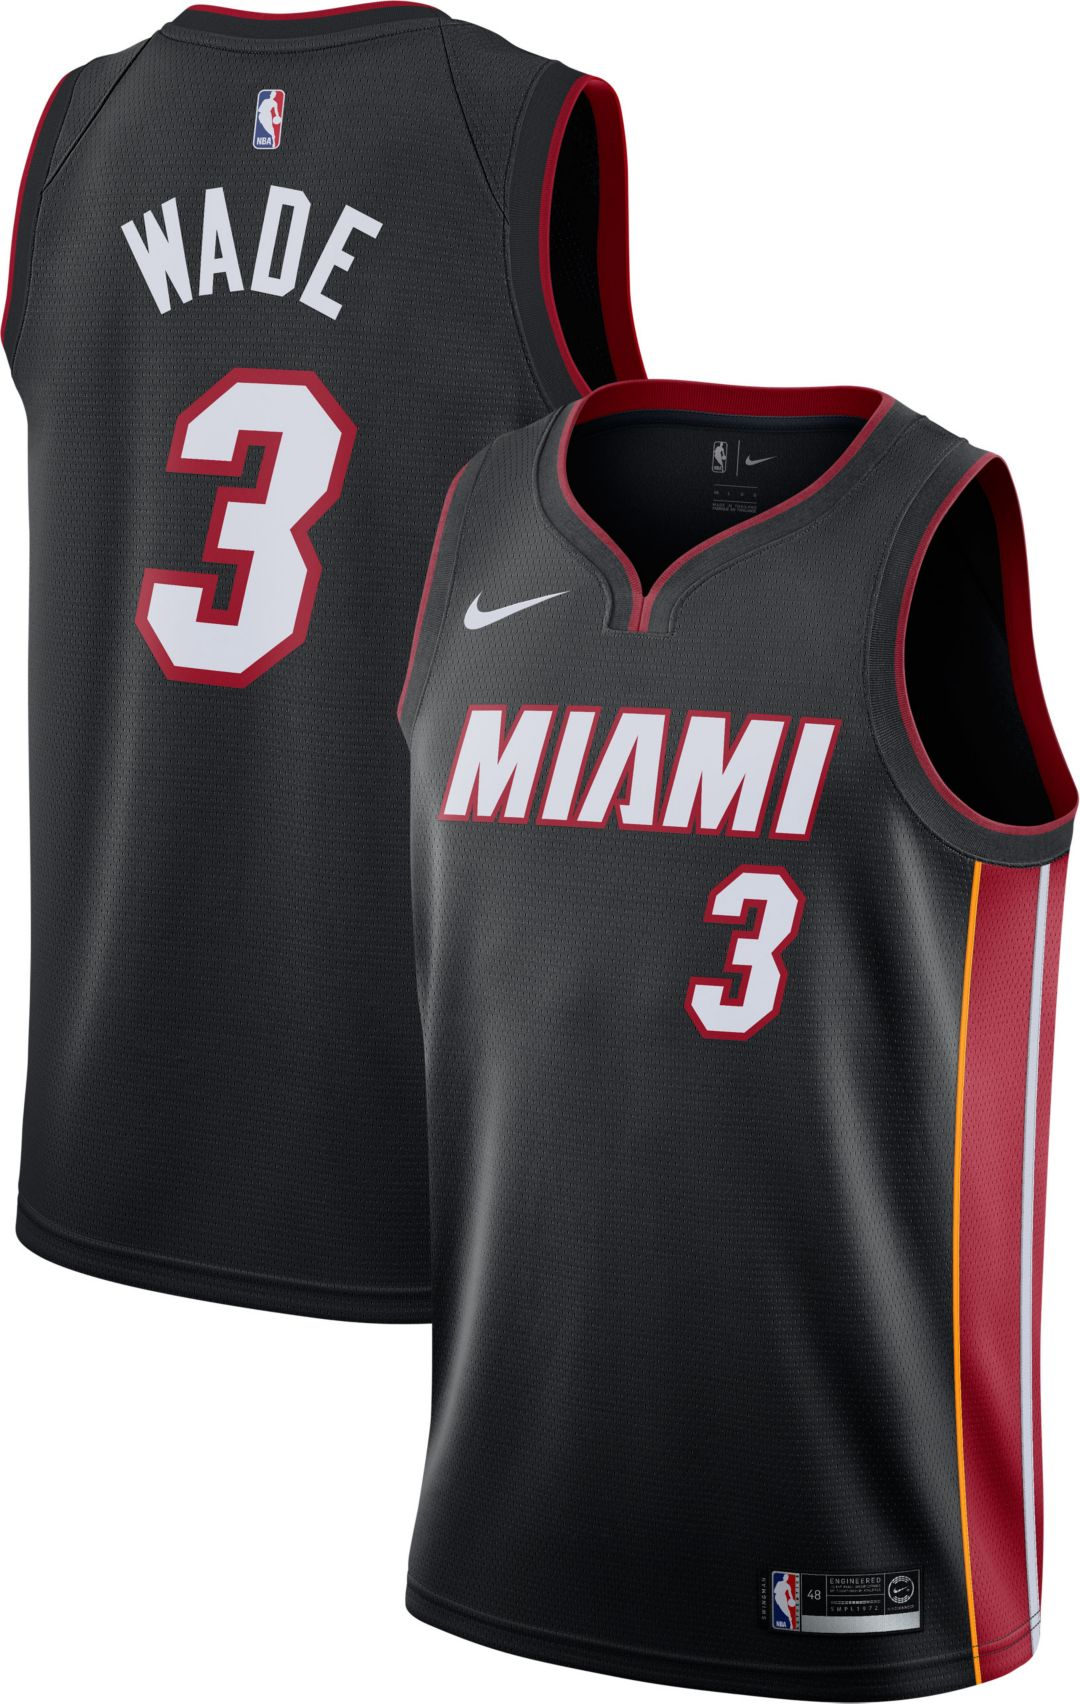 new arrival 3a217 2a051 Nike Men's Miami Heat Dwyane Wade #3 Black Dri-FIT Swingman Jersey